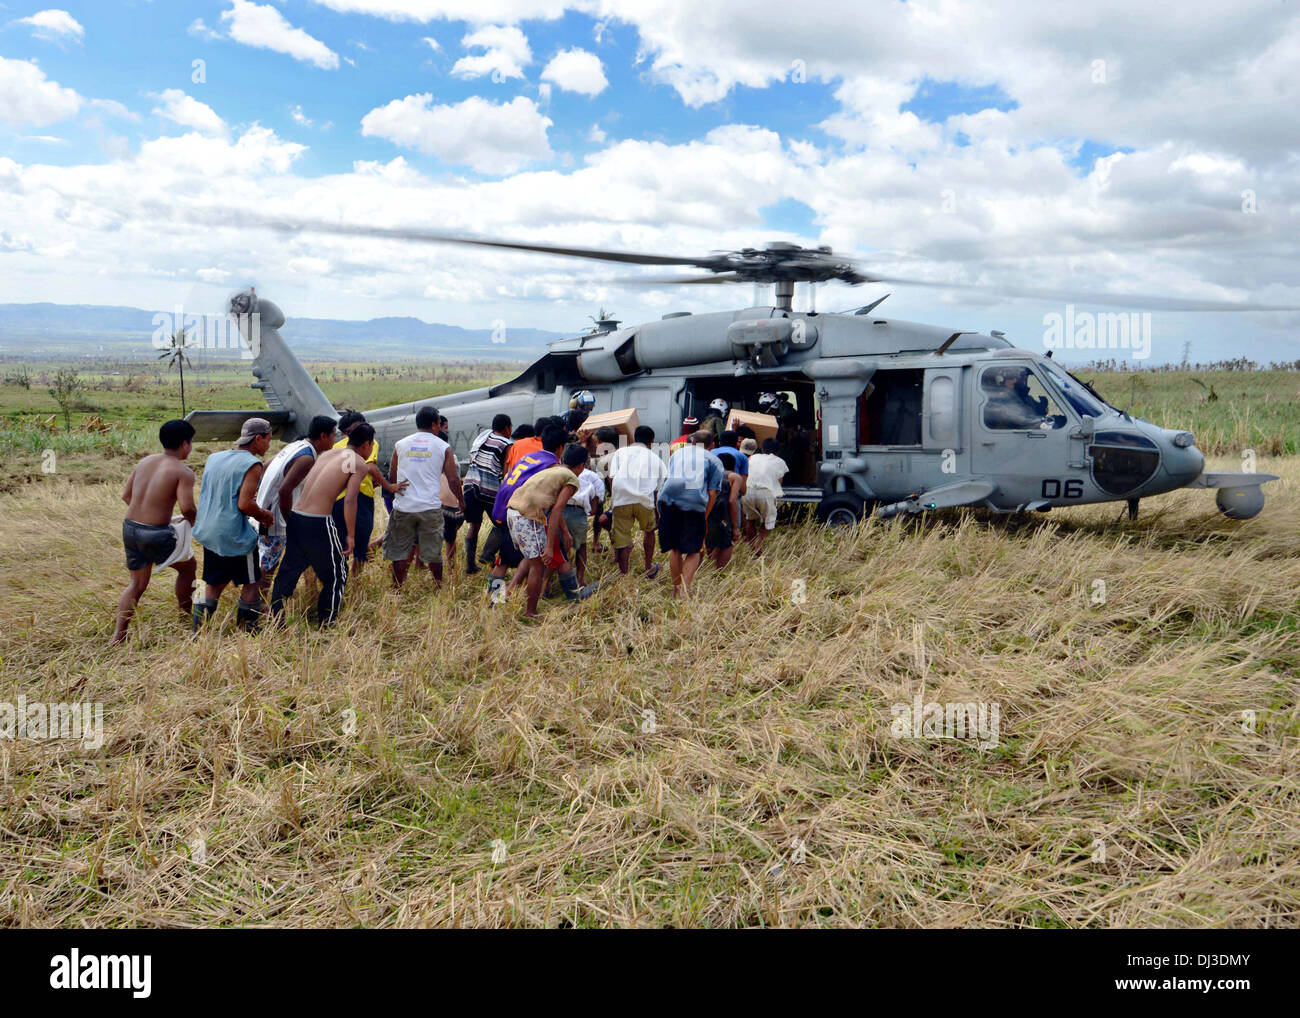 A US Navy MH-60S Sea Hawk helicopter delivers humanitarian relief supplies to victims of Typhoon Haiyan November 16, 2013 in Mahayag, Philippines. - Stock Image